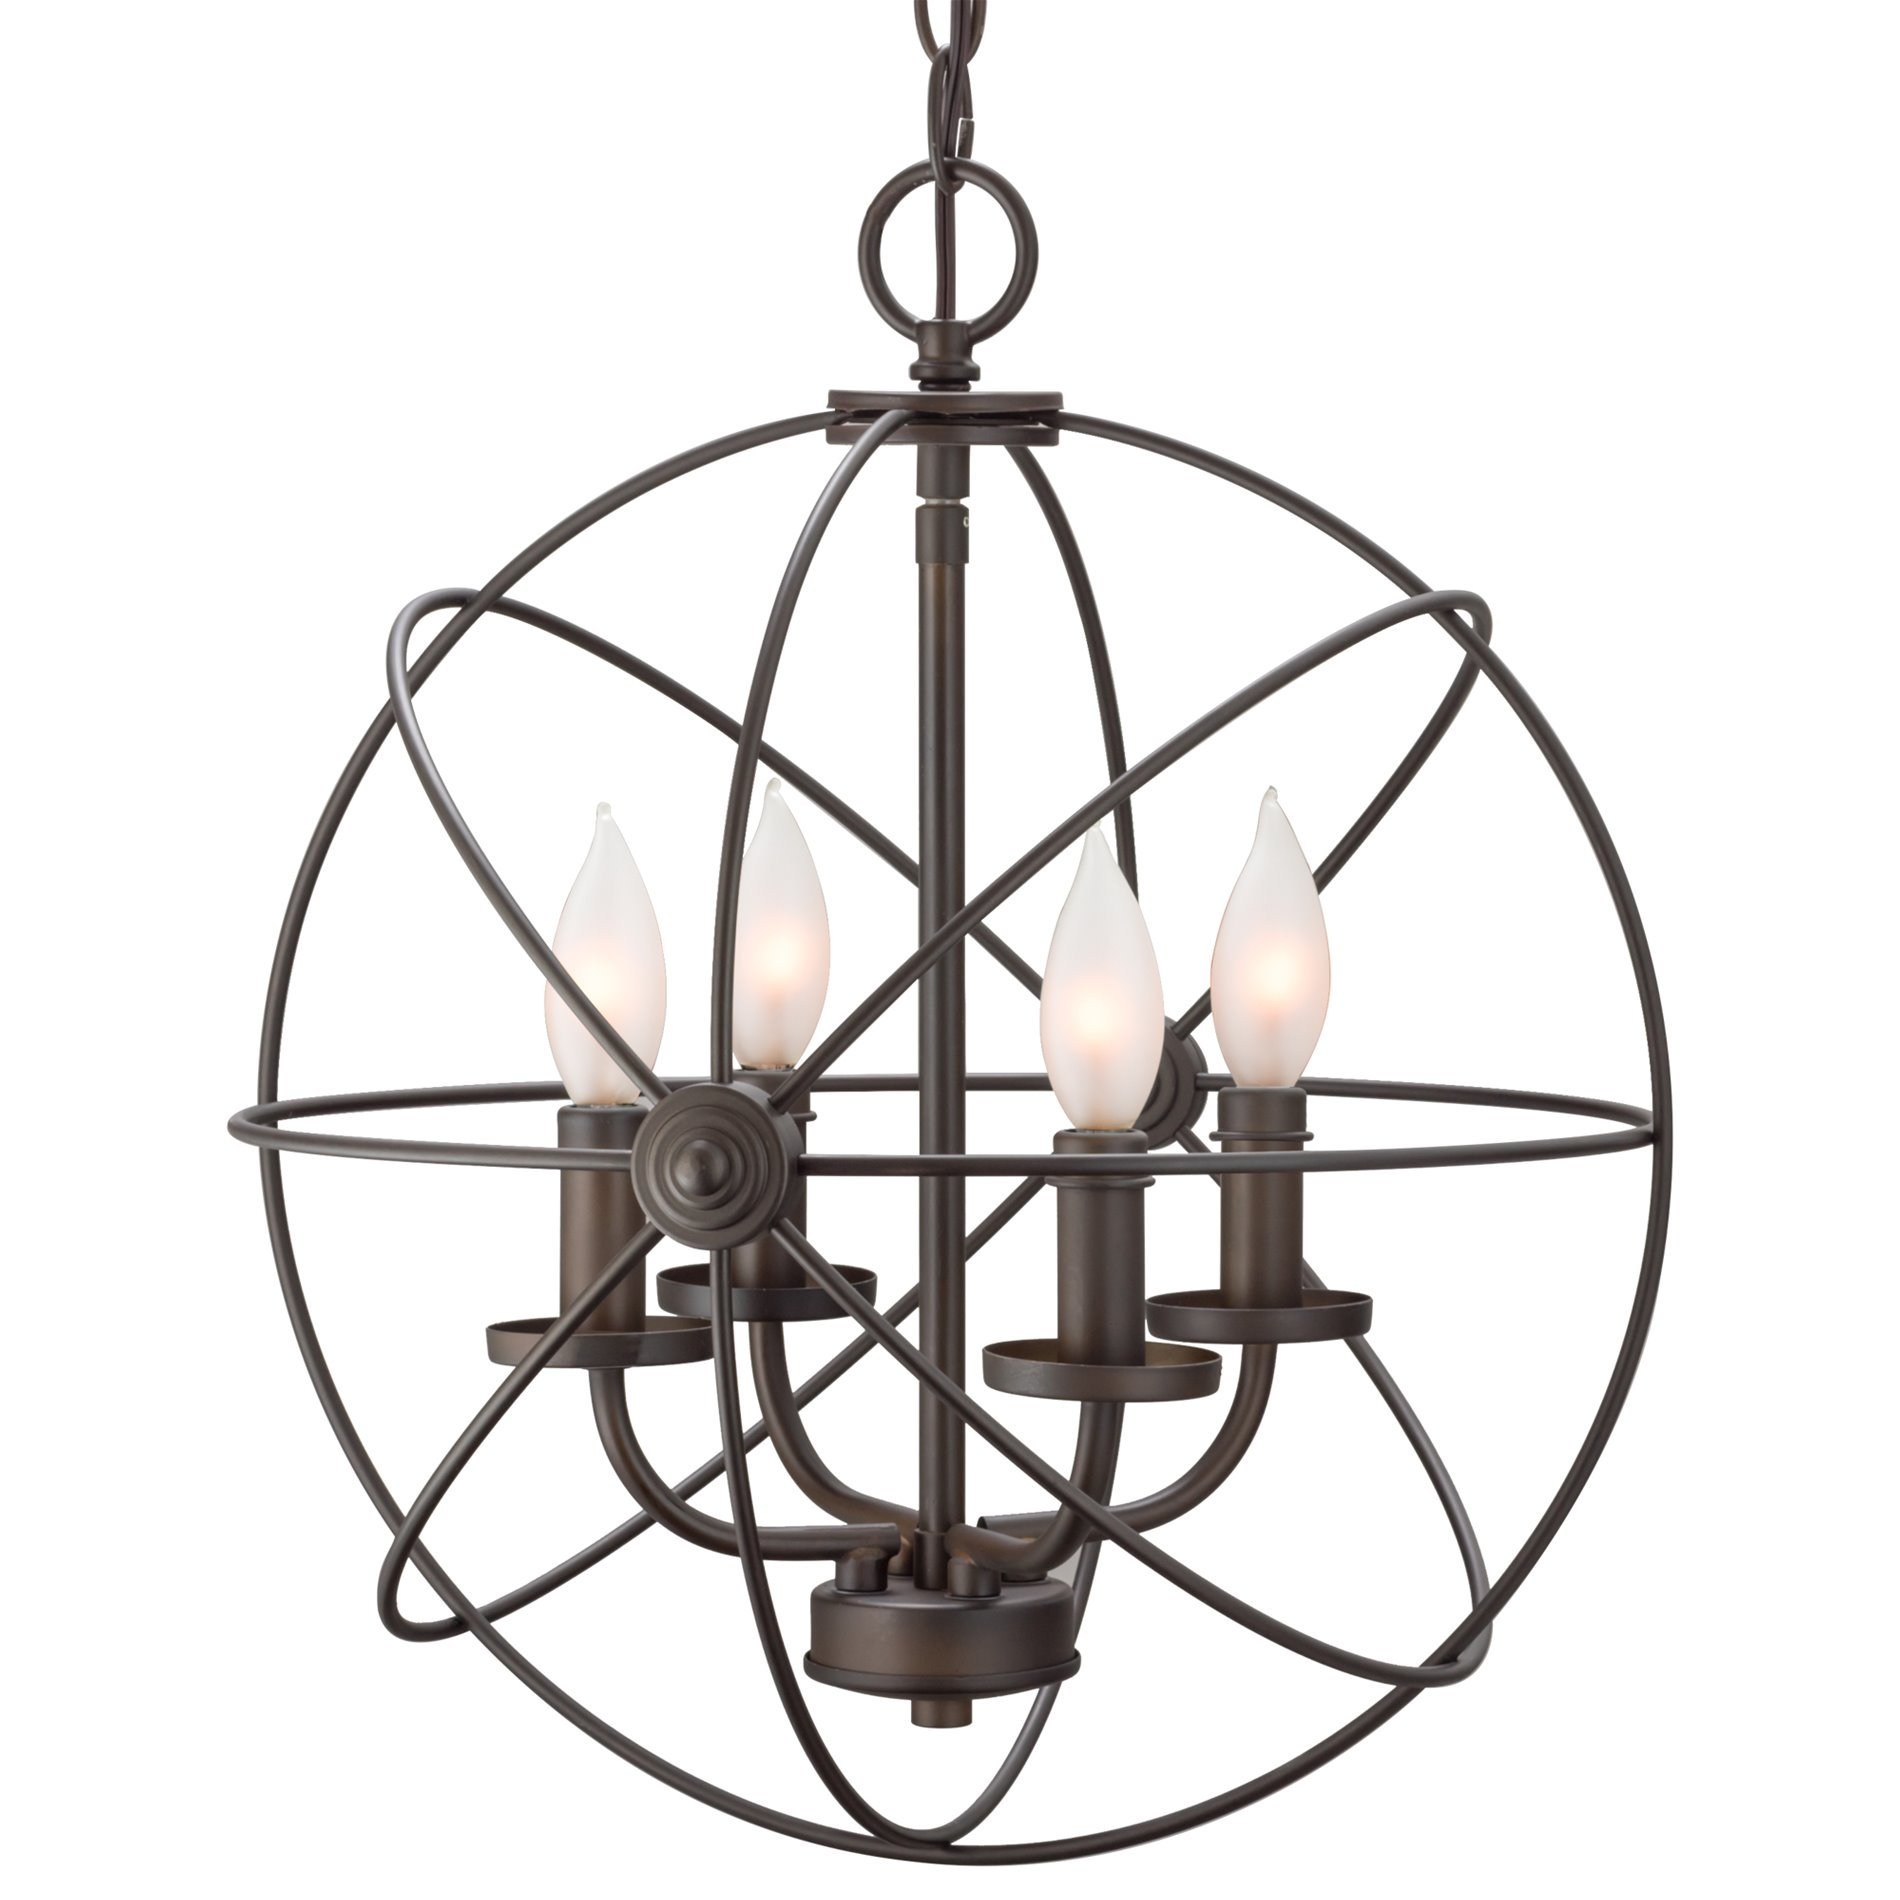 Kira Home Orbits II 15'' 4-Light Modern Sphere/Orb Chandelier, Oil-Rubbed Bronze Finish